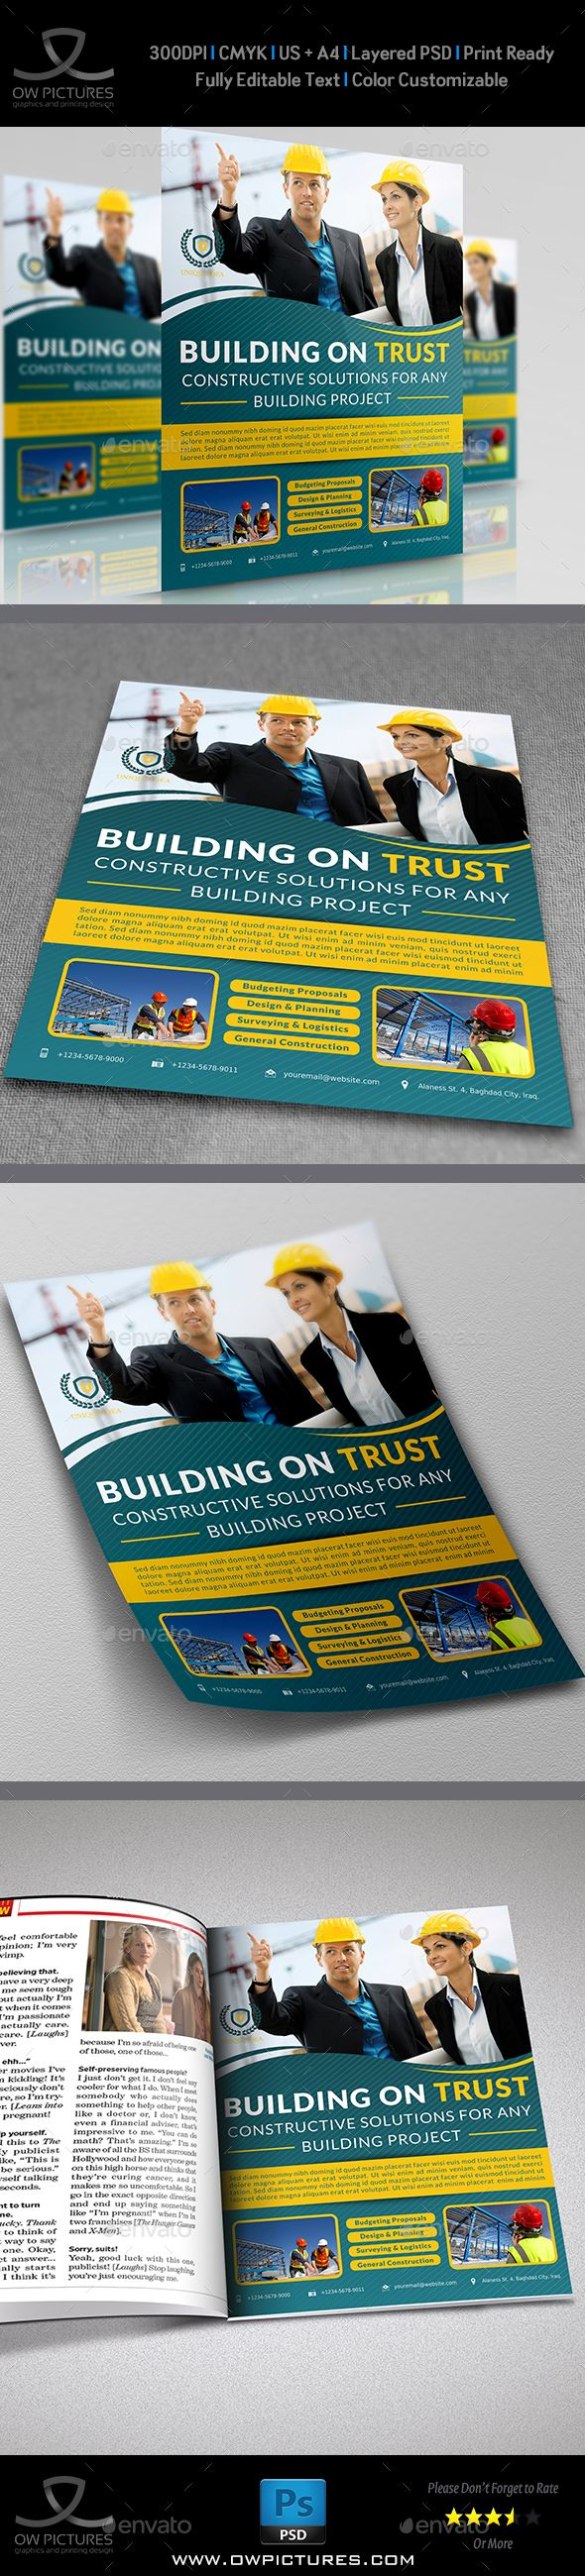 Construction Business Flyer — Photoshop PSD #architect brochure #forwarding • Available here → https://graphicriver.net/item/construction-business-flyer/5194400?ref=pxcr